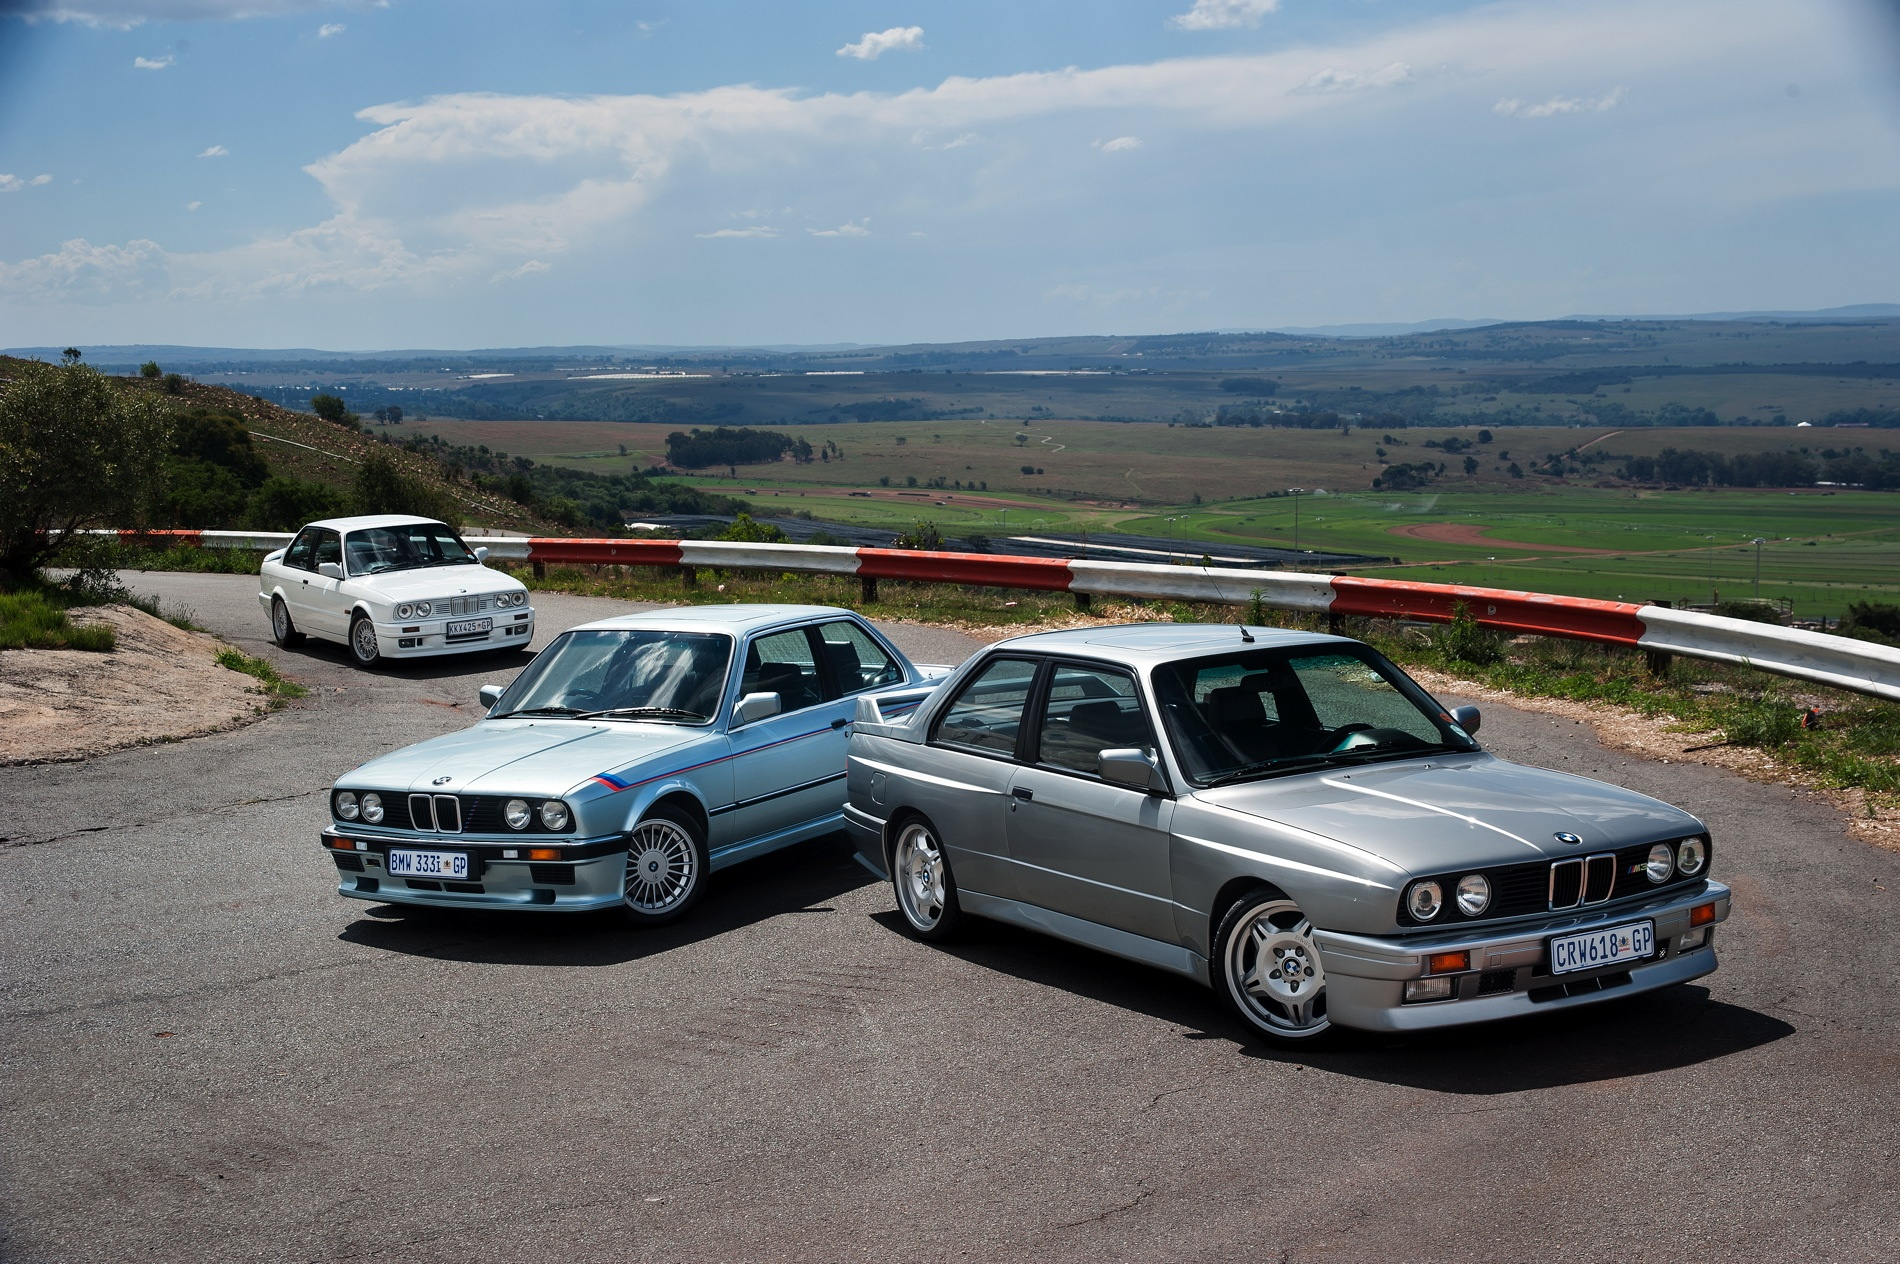 Bmw 325i Modifications Fresh Three Of the Best E30 M3 Versus E30 333i and E30 325is Of Best Of Bmw 325i Modifications